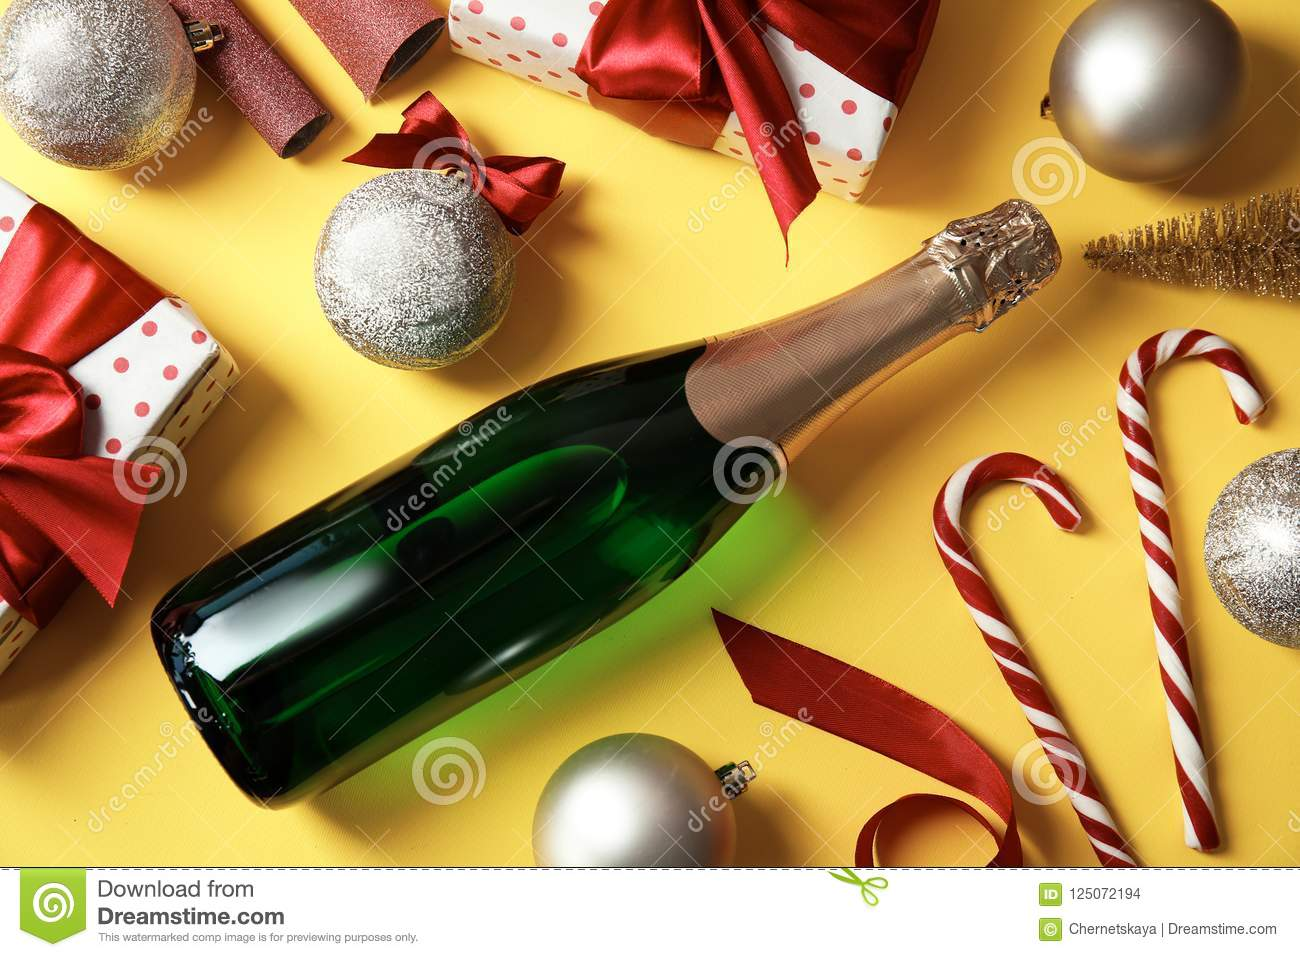 Christmas composition with bottle of champagne and gifts on color background